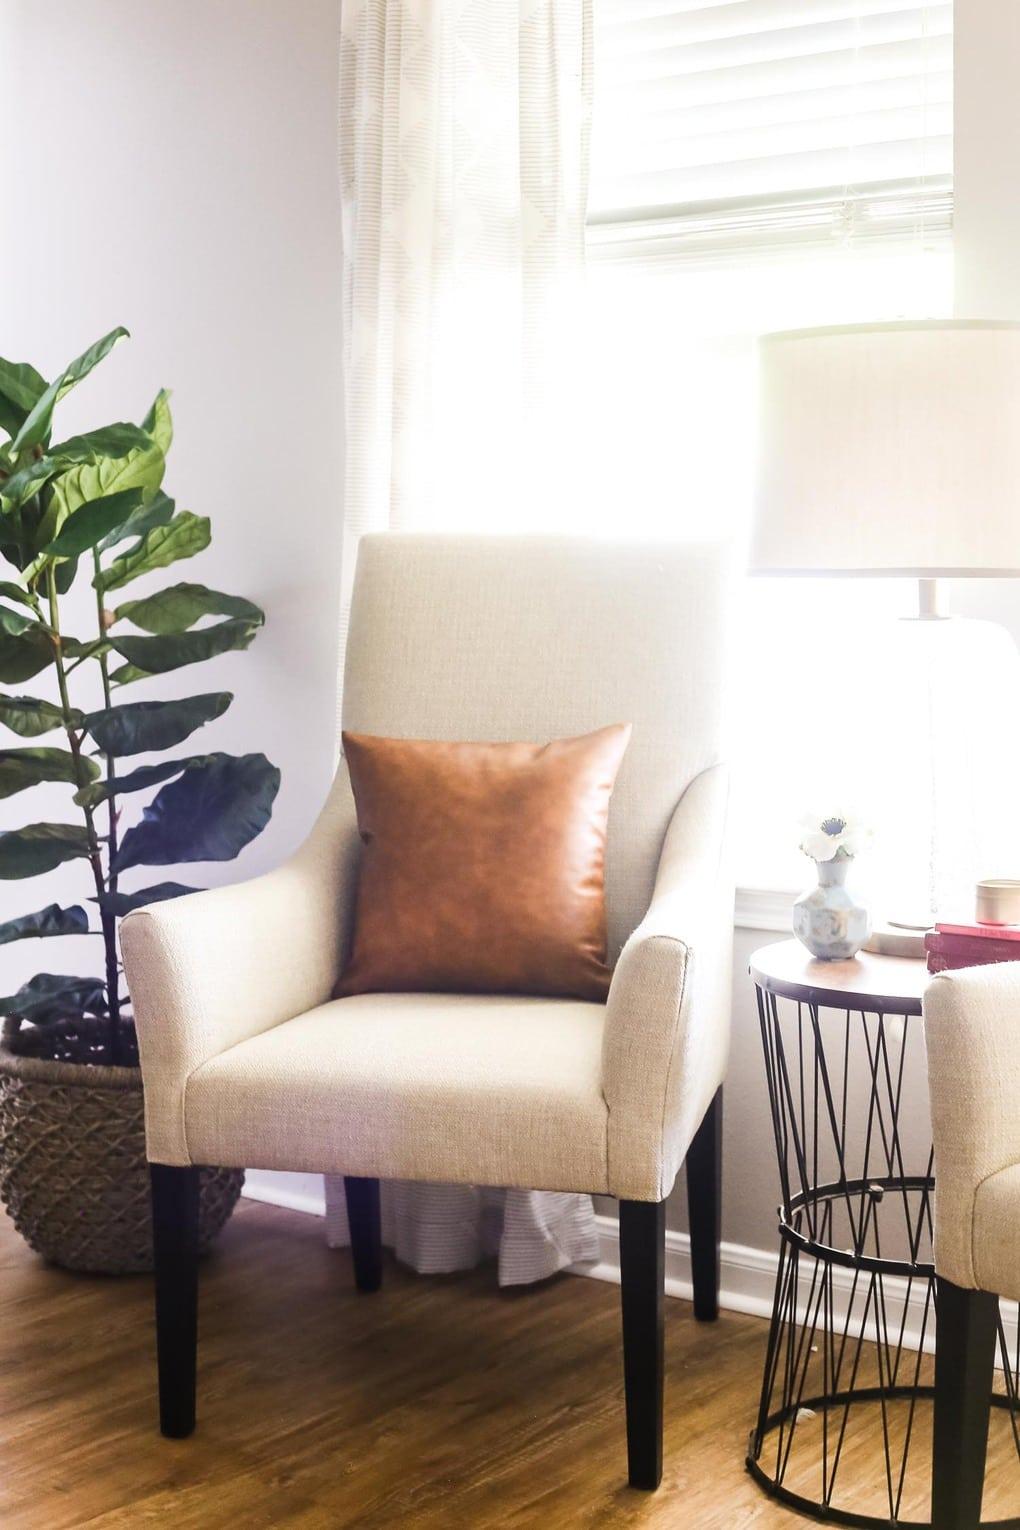 Bassett Furniture review- close up of two Austen arm chairs